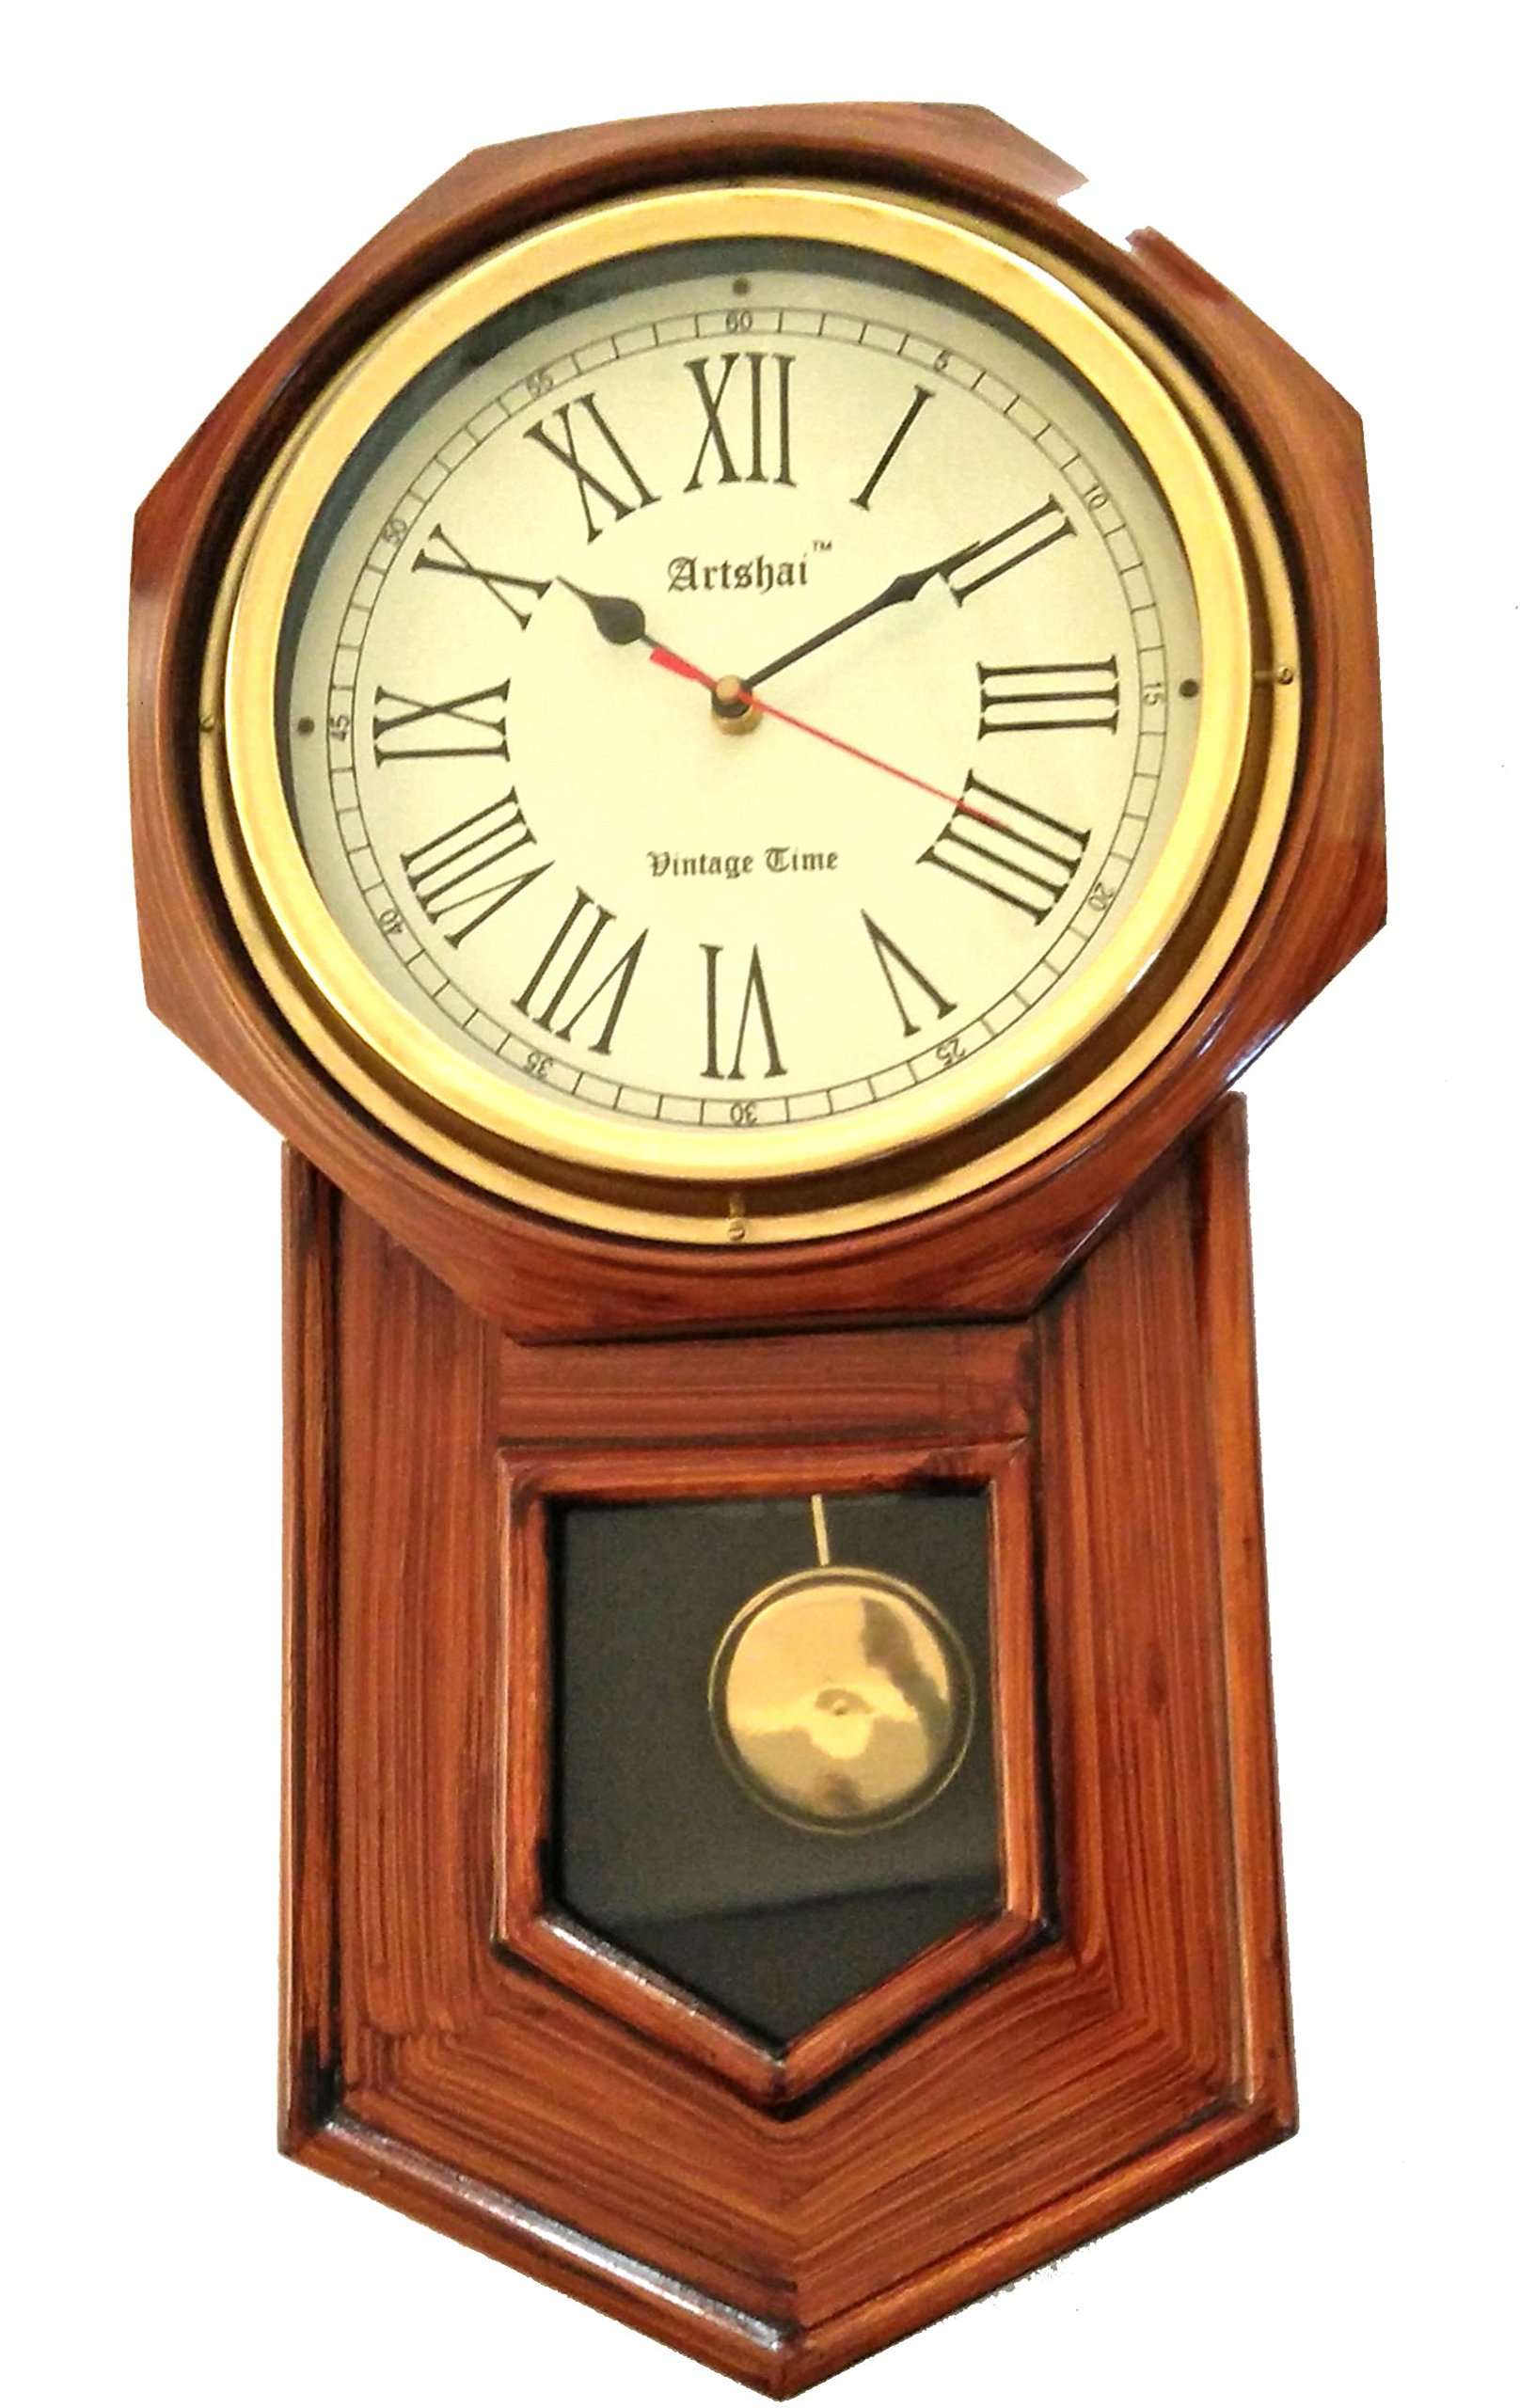 Artshai Antique look pendulum wall clock 20 inch height and 11 inch dial made from wood and brass